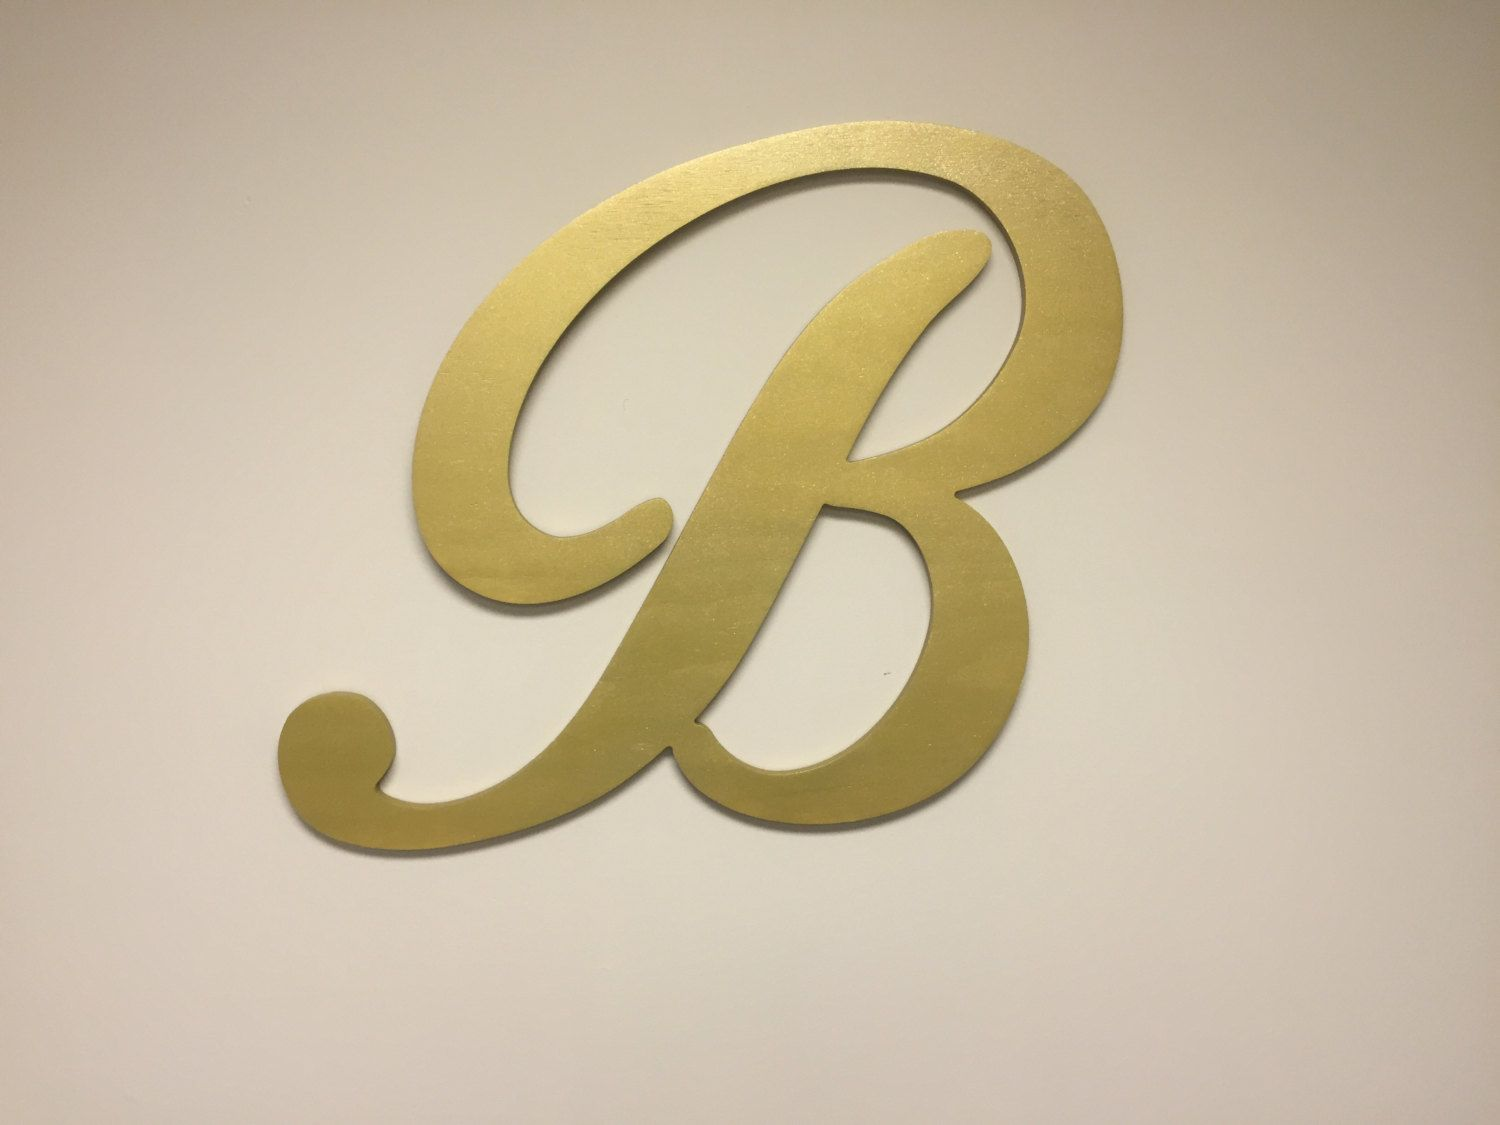 Gold Letter B Large Letter Decor Wood Wall Letters Home Wall